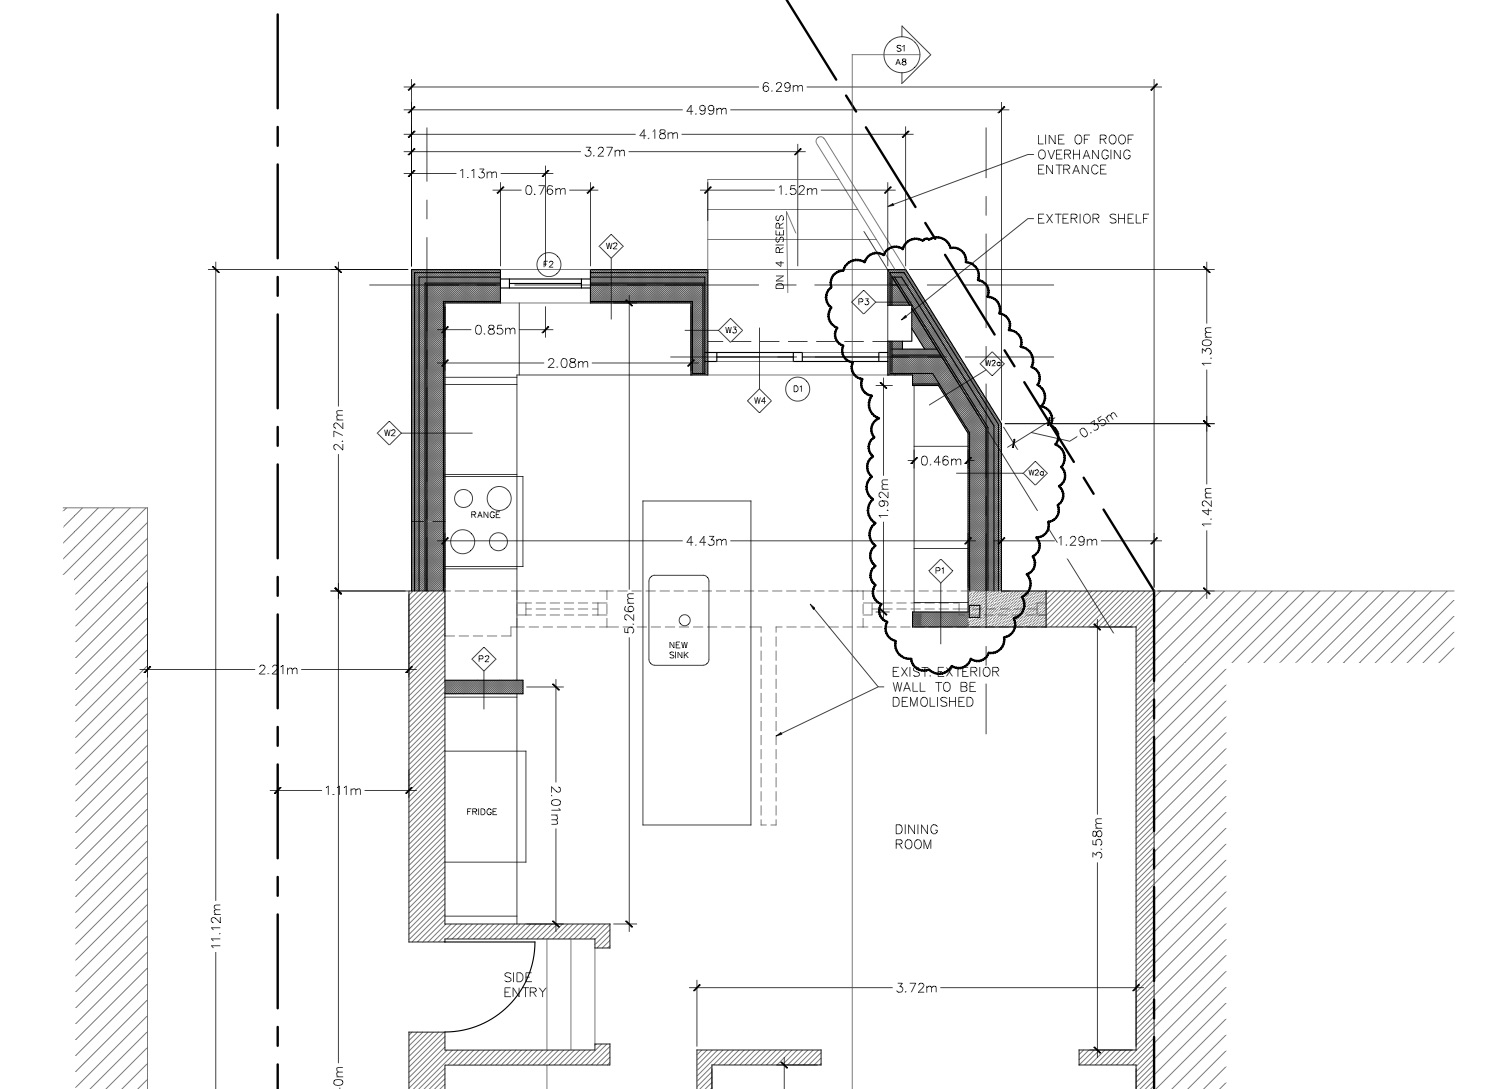 Plan view of the 9'x14' addition.